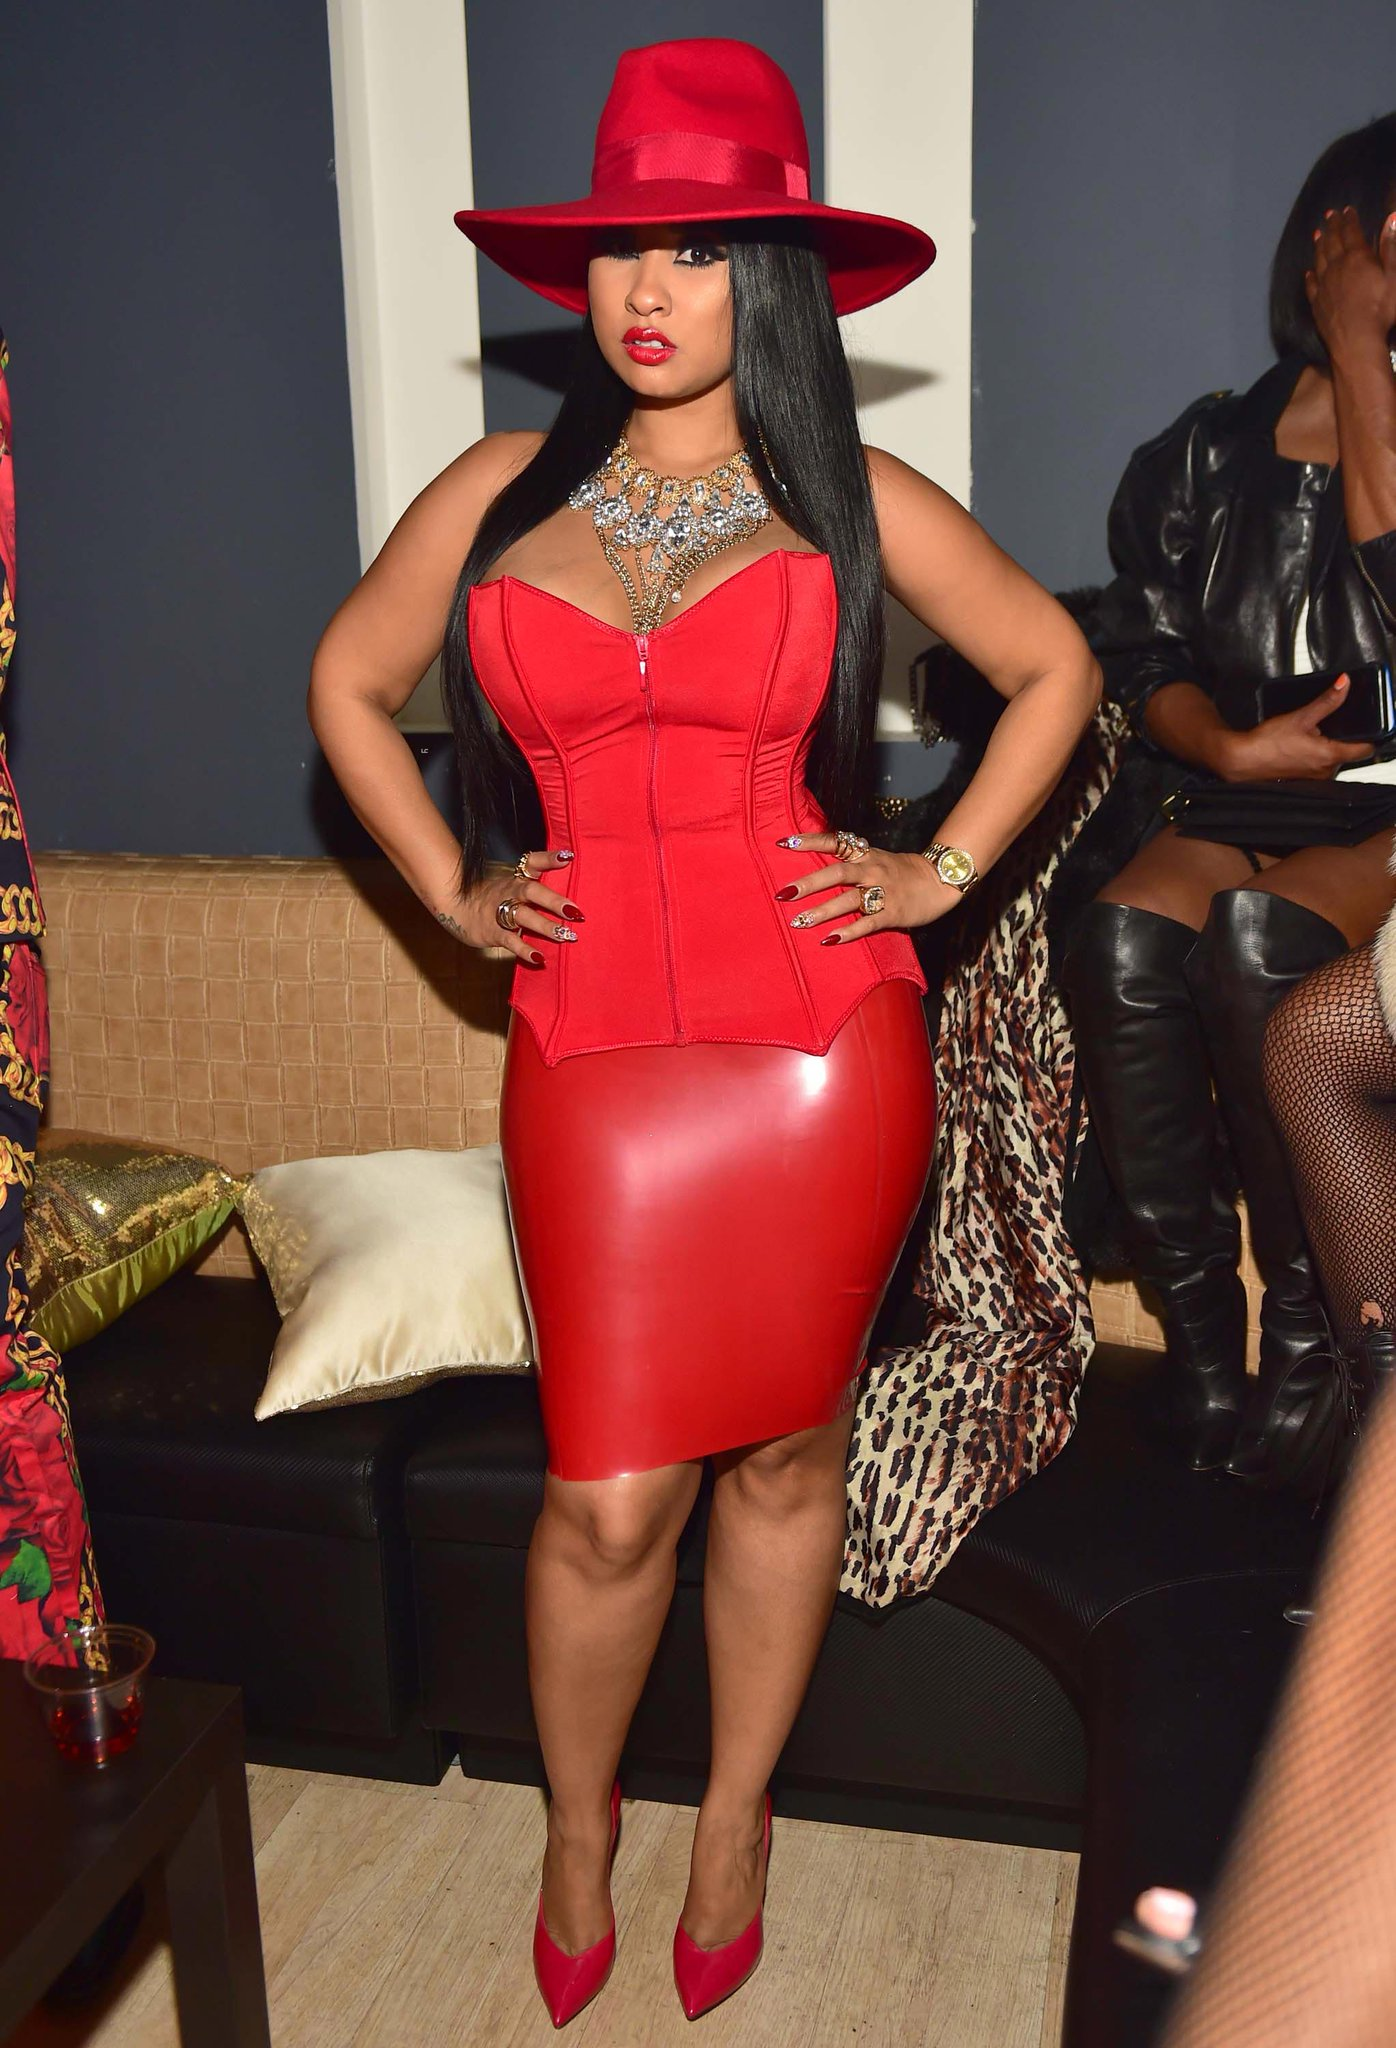 latex kitsch on twitter   u0026quot on the scene  tammy rivera halloween party  latex  rubber  model